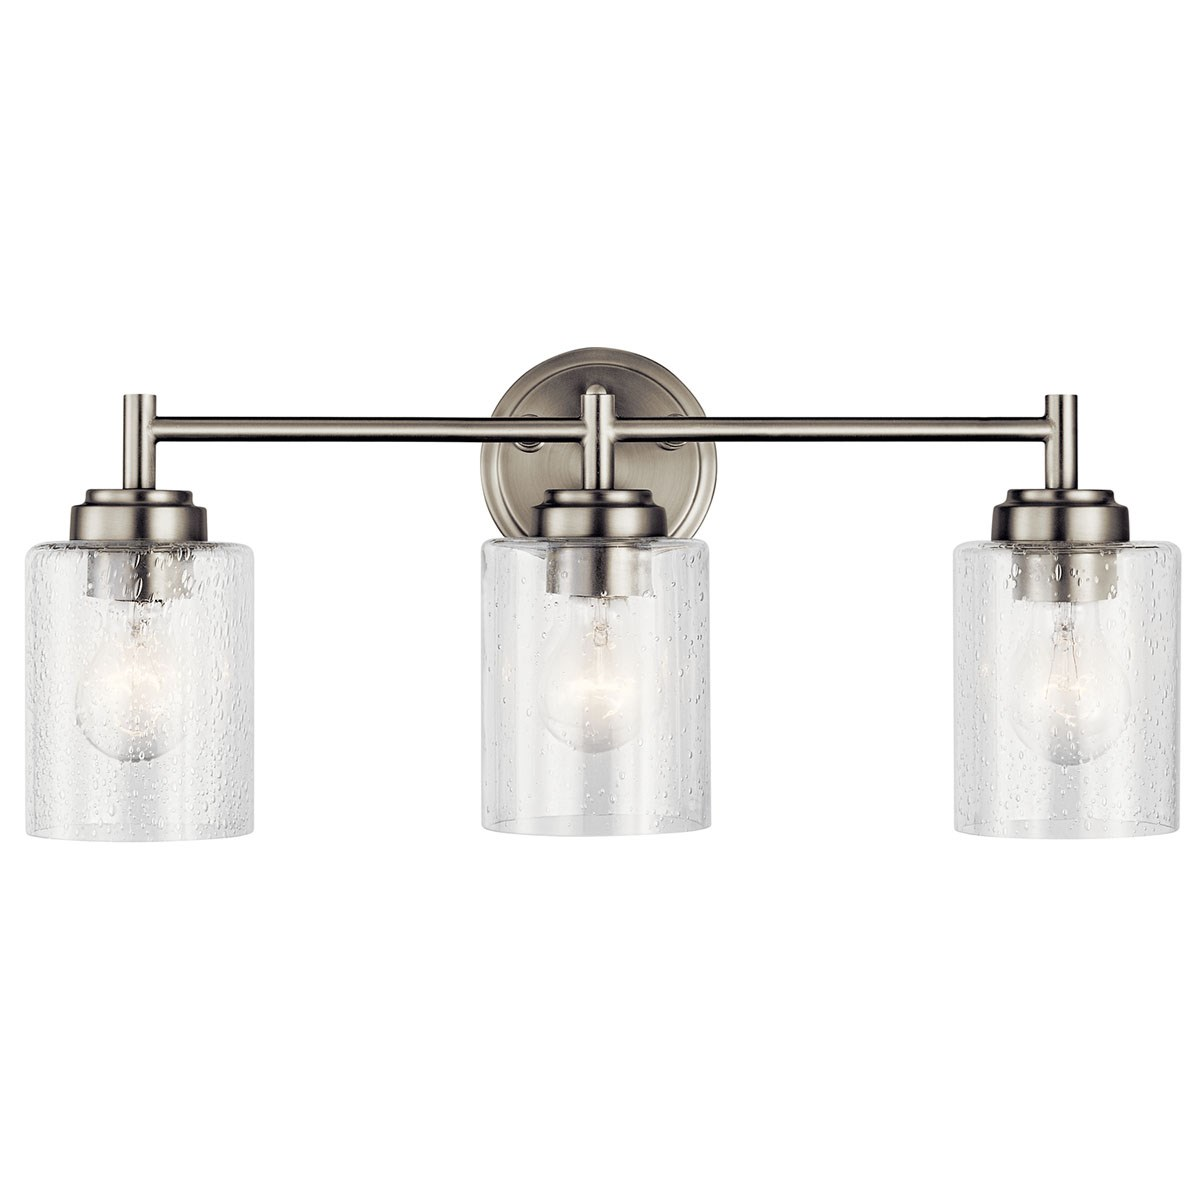 Winslow 3 Light Vanity Light Brushed Nickel Kichler Lighting